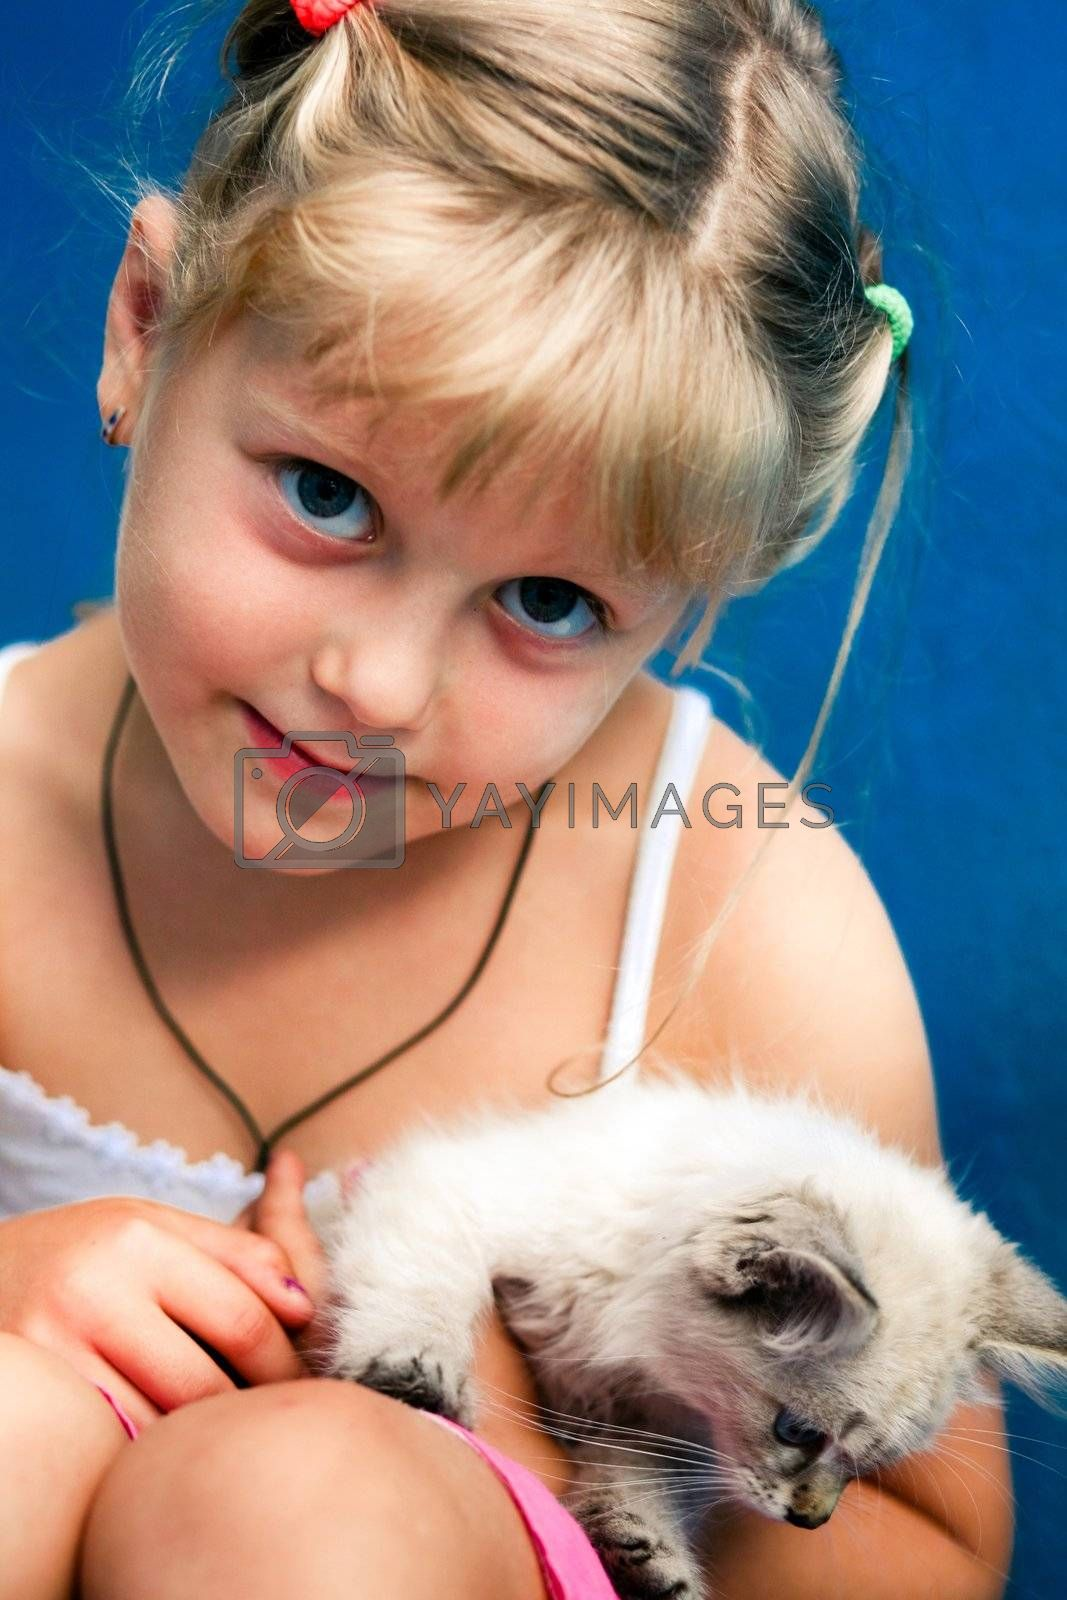 Smiling girl with a kitten in her arms